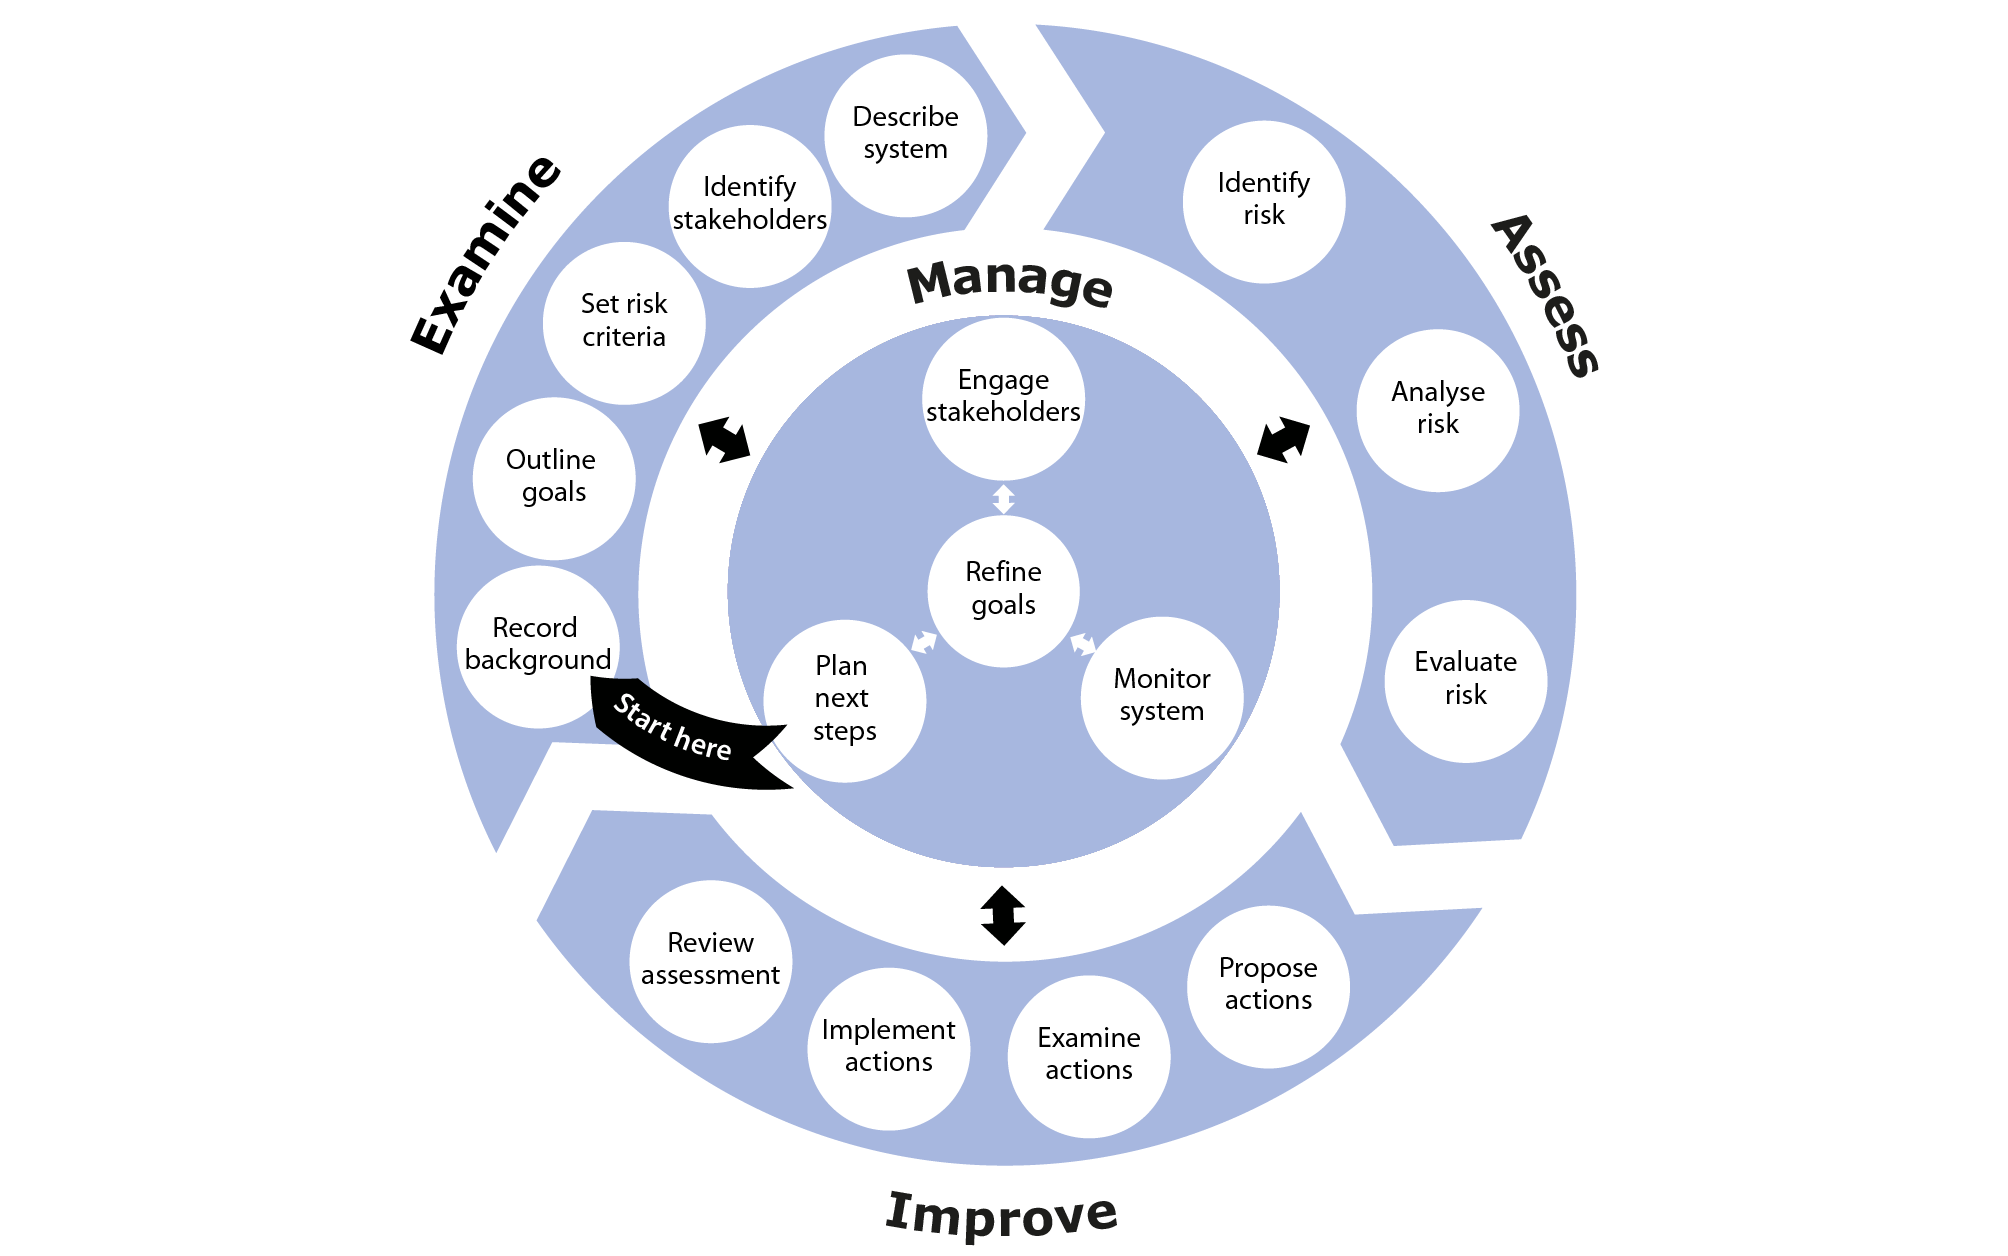 Diagram showing the key activities in an SSA and which phase of the process they belong to. The Examine phase involves Record background, Outine goals, Set risk criteria, Identify stakeholders, and Describe system. Assess involves Identify risk, Analyse risk and Evaluate risk. Improve involves Propose actions, Detail actions, Implement actions and Review assessment. Manage involves Plan next steps, Refine the goals, Engage stakeholders and Monitor system.